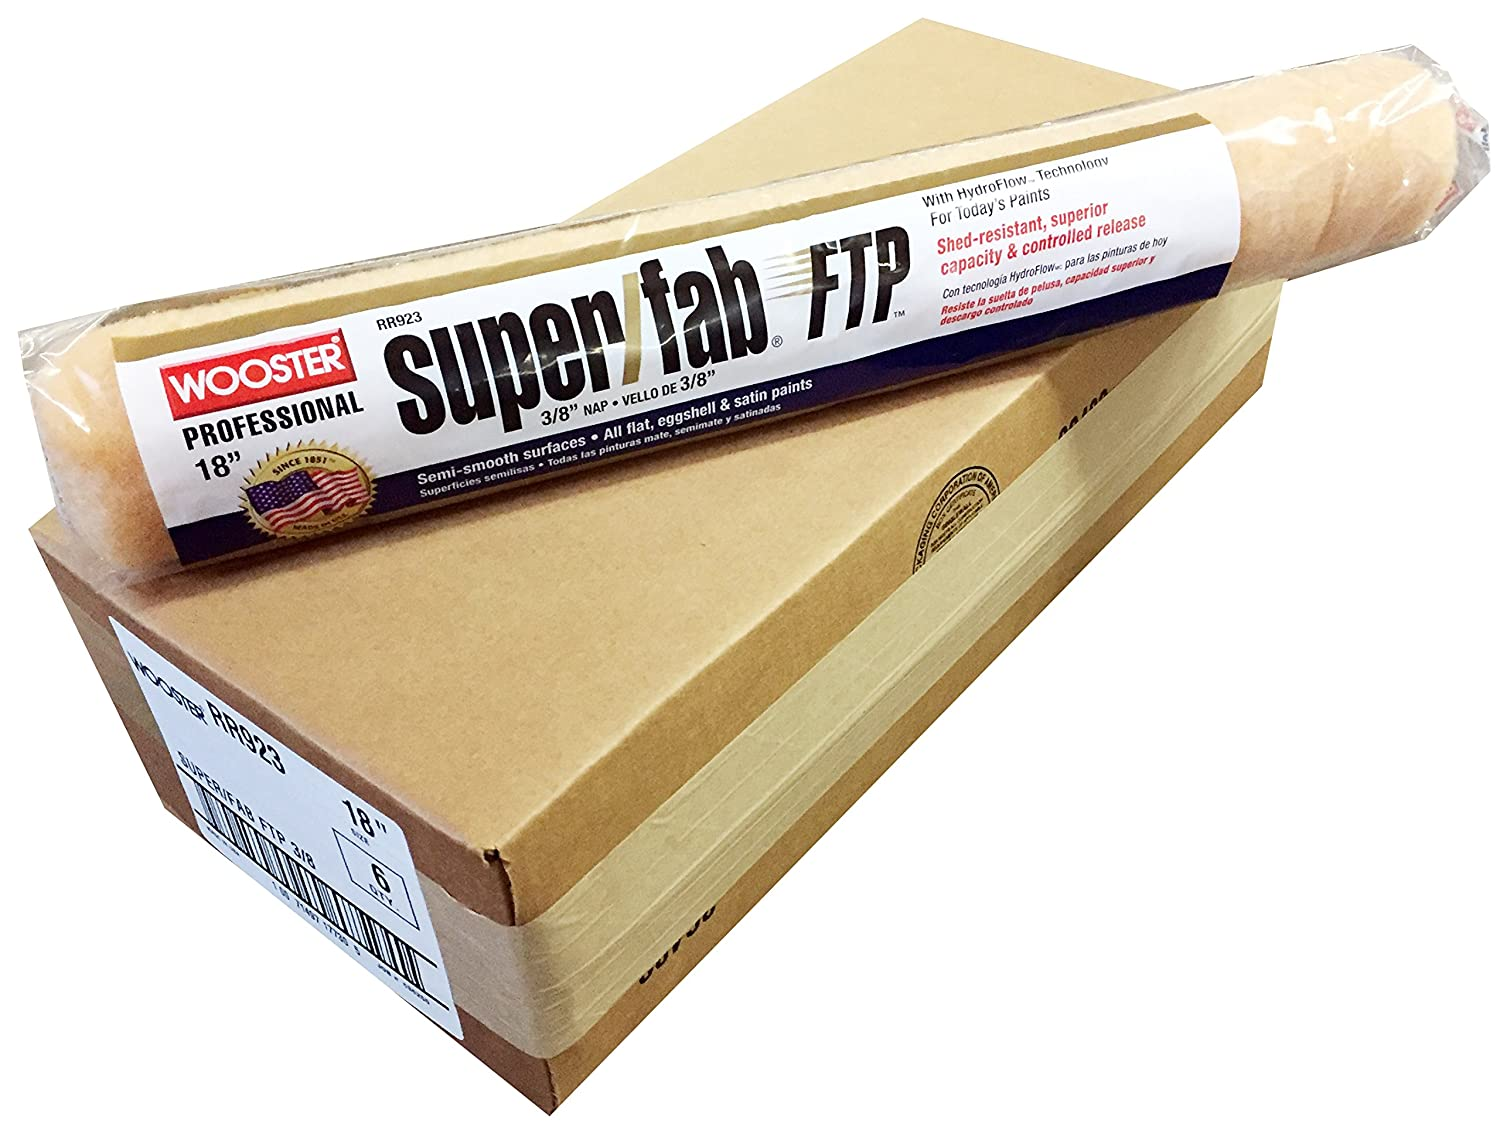 Wooster Brush RR923-18 Super/Fab FTP 3/8 Nap Roller Cover - Pack of 6